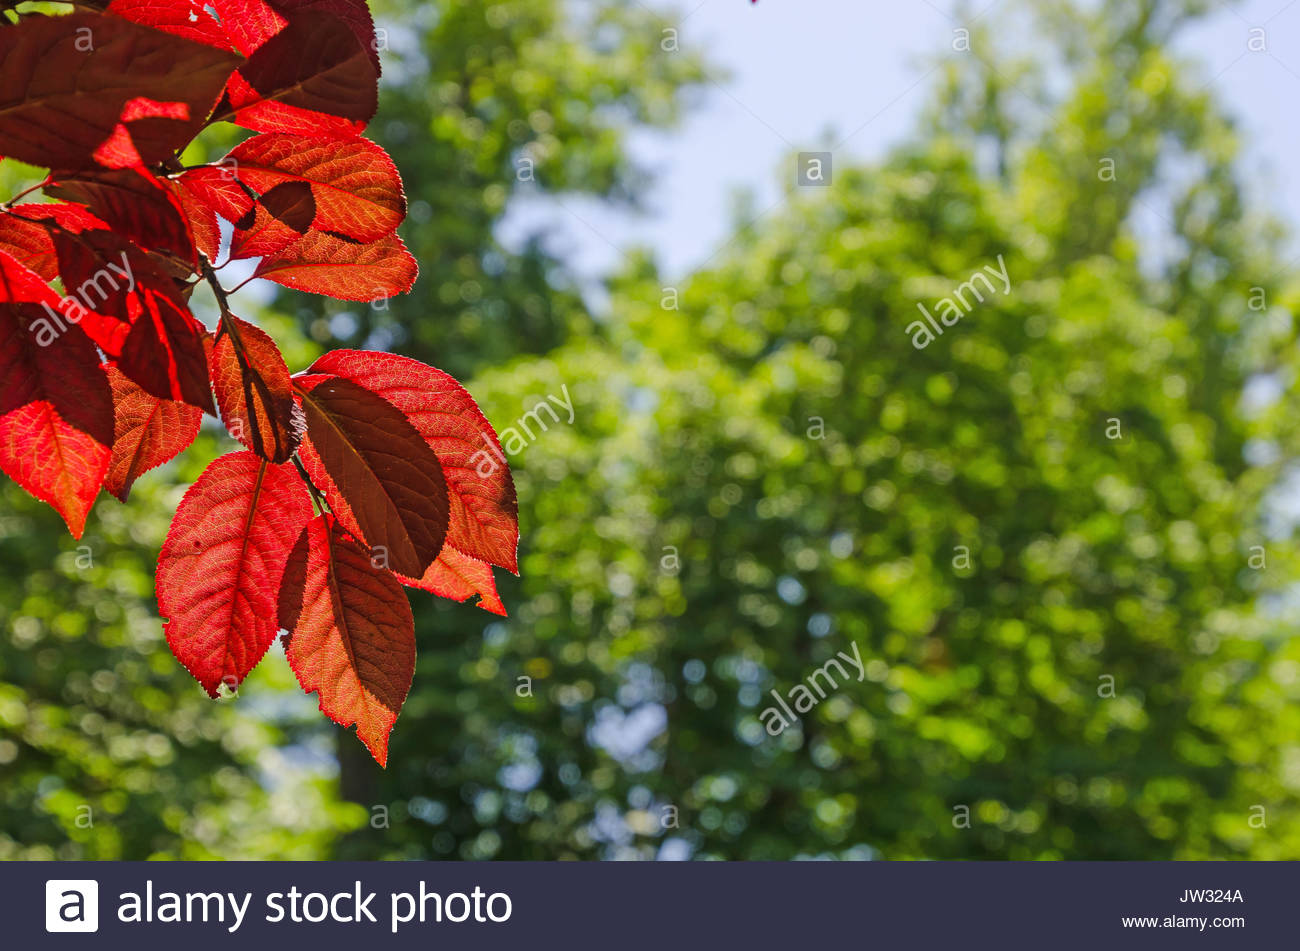 Red Leaves In A Red Leaved Plum Tree Over A Blurred Green Trees